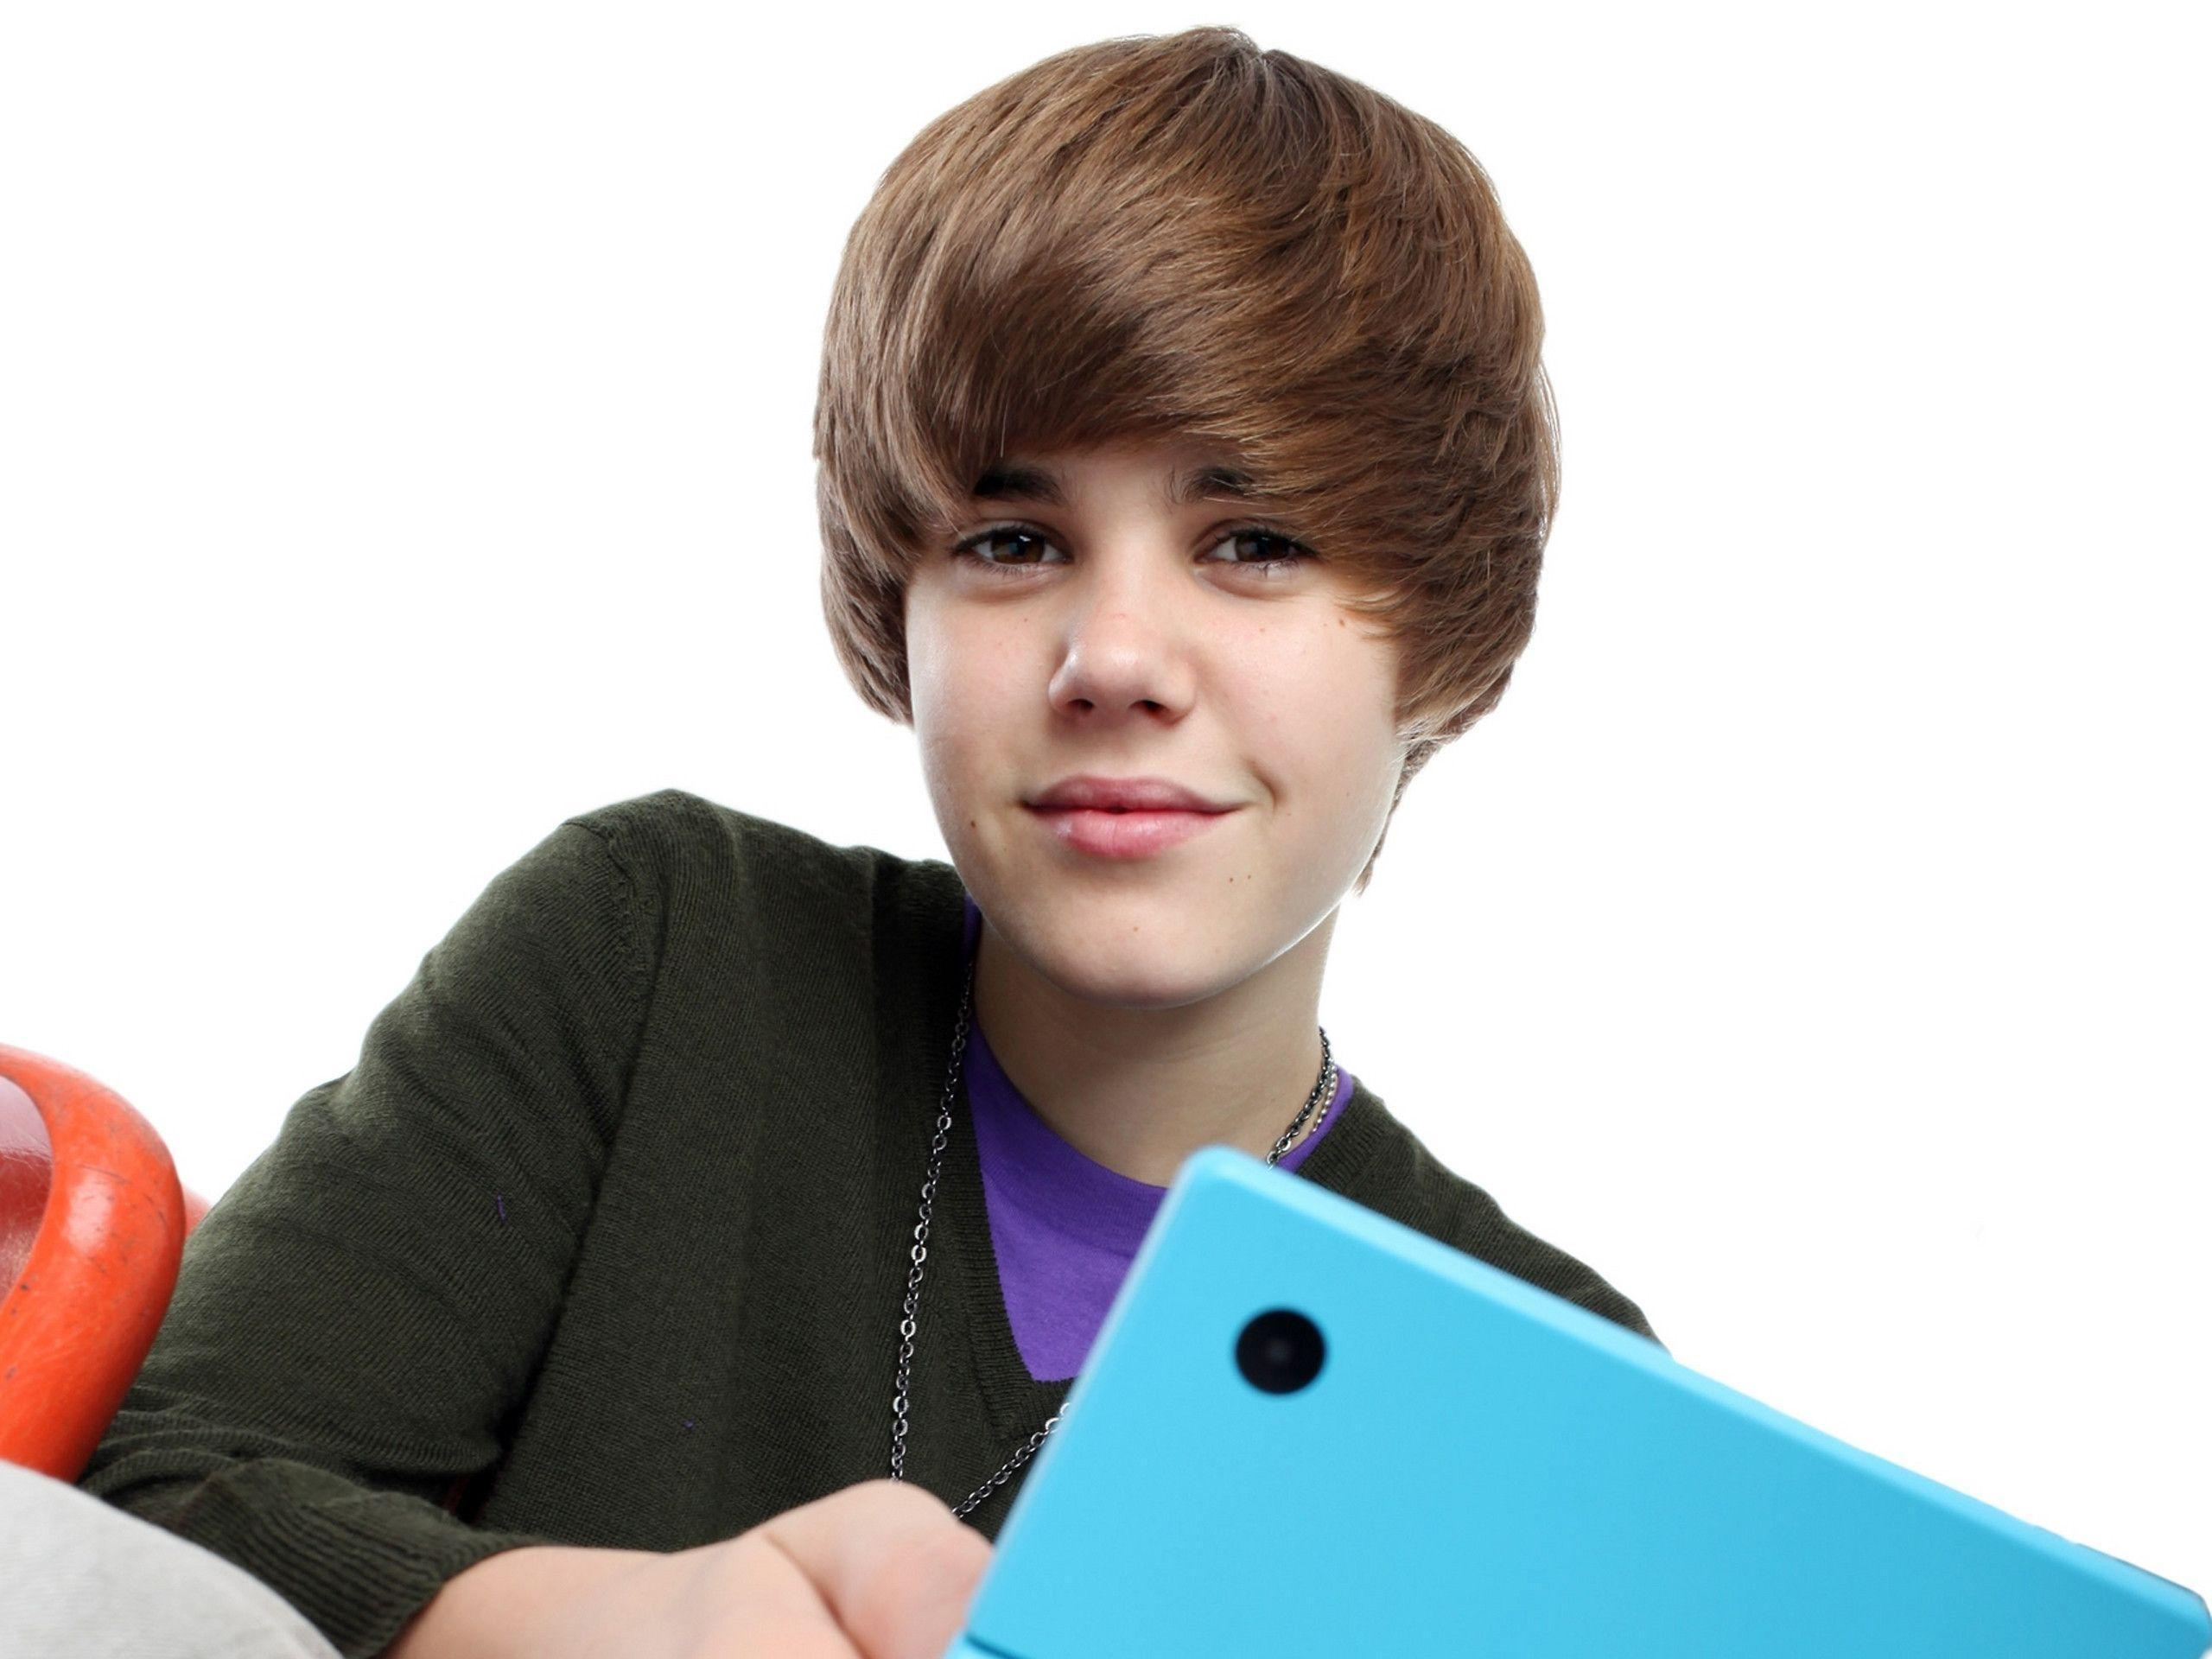 Justin Bieber HD Wallpapers | Hd Wallpapers